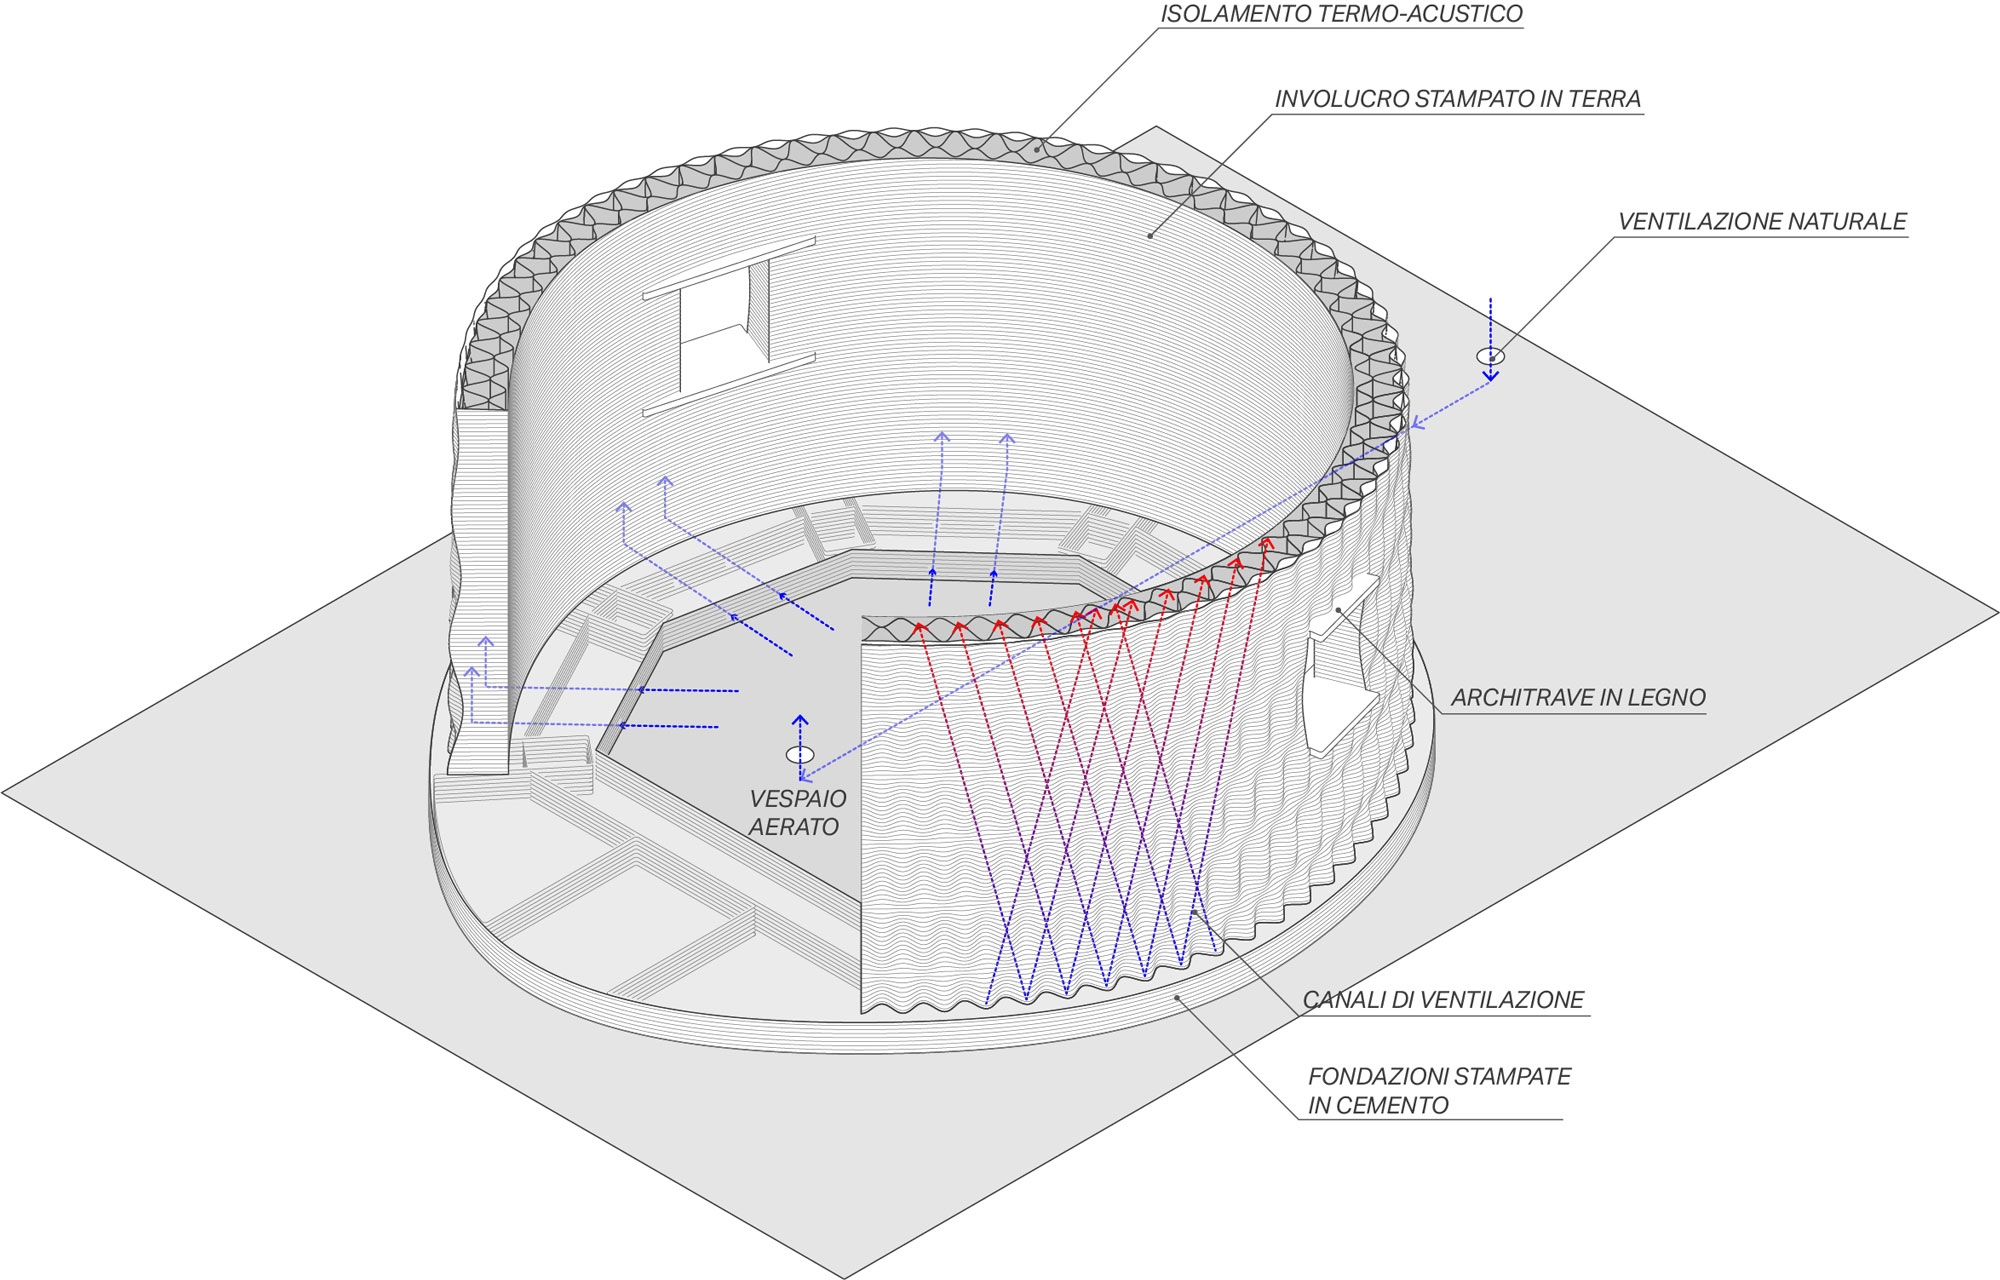 The first 3D printed House with earth | Gaia | 3D Printers ... on sunken house plans, straight house plans, octagon house plans, tower house plans, 2 bedroom round house plans, vertical house plans, 800 sq ft home floor plans, unique house plans, cylindrical house plans, prefab round house plans, l-shaped house plans, short house plans, power house plans, small round house plans, star house plans, half round house plans, high density house plans, round concrete house plans, octagonal house building plans, semicircular house plans,